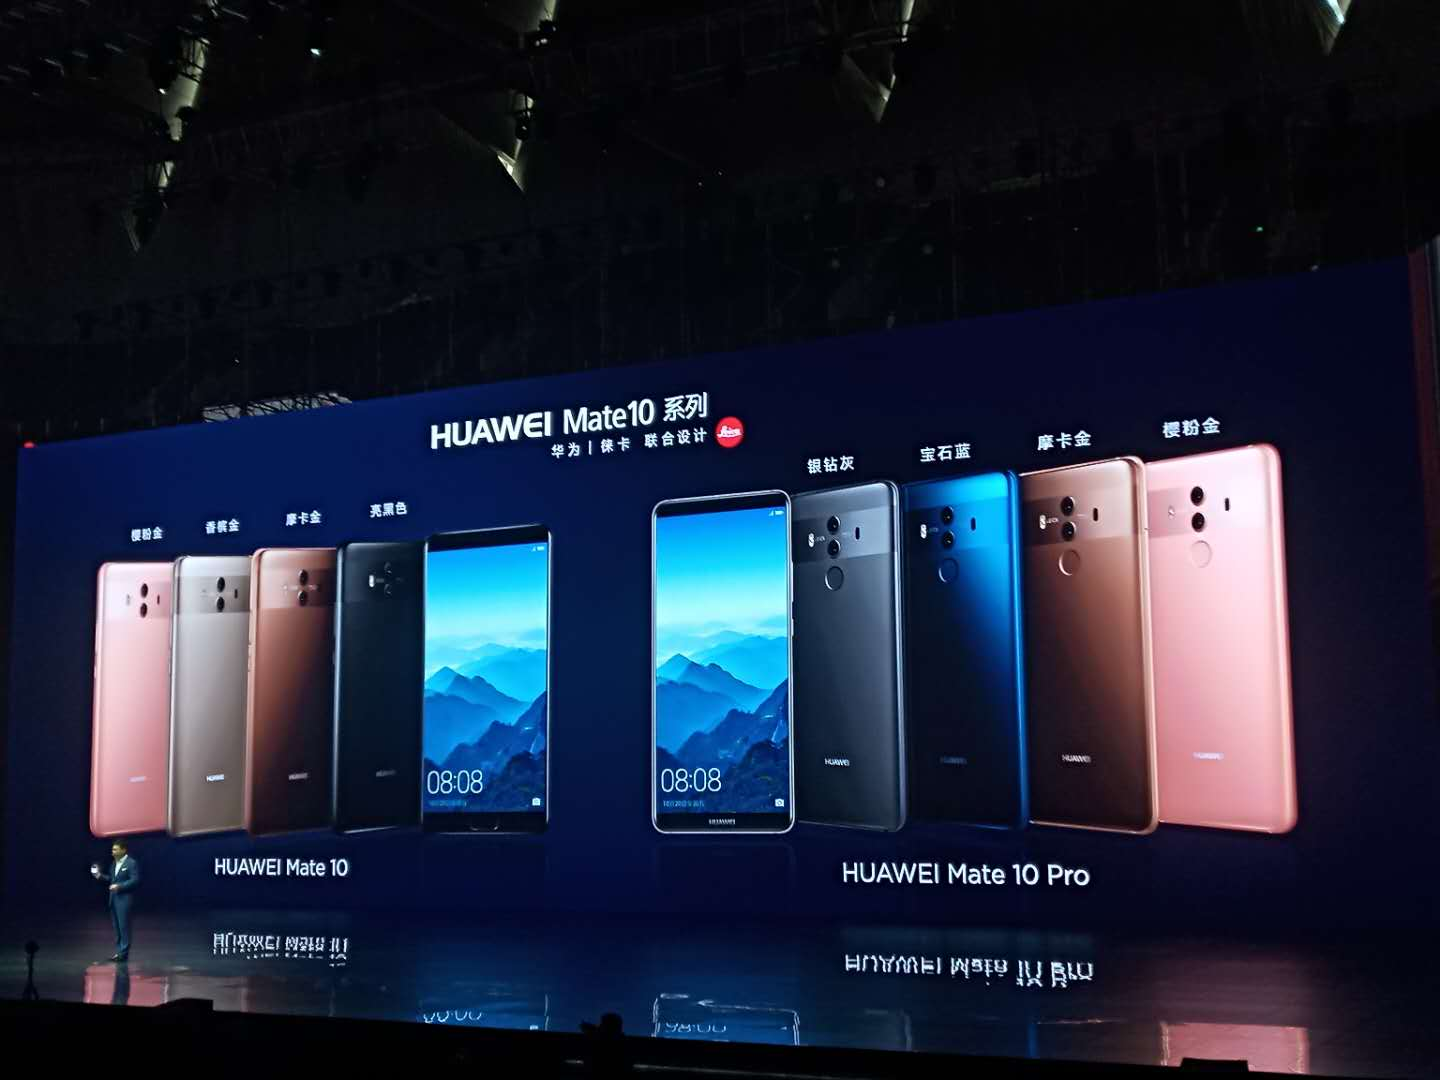 Huawei Mate 10 line the release of the price of 3899 yuan